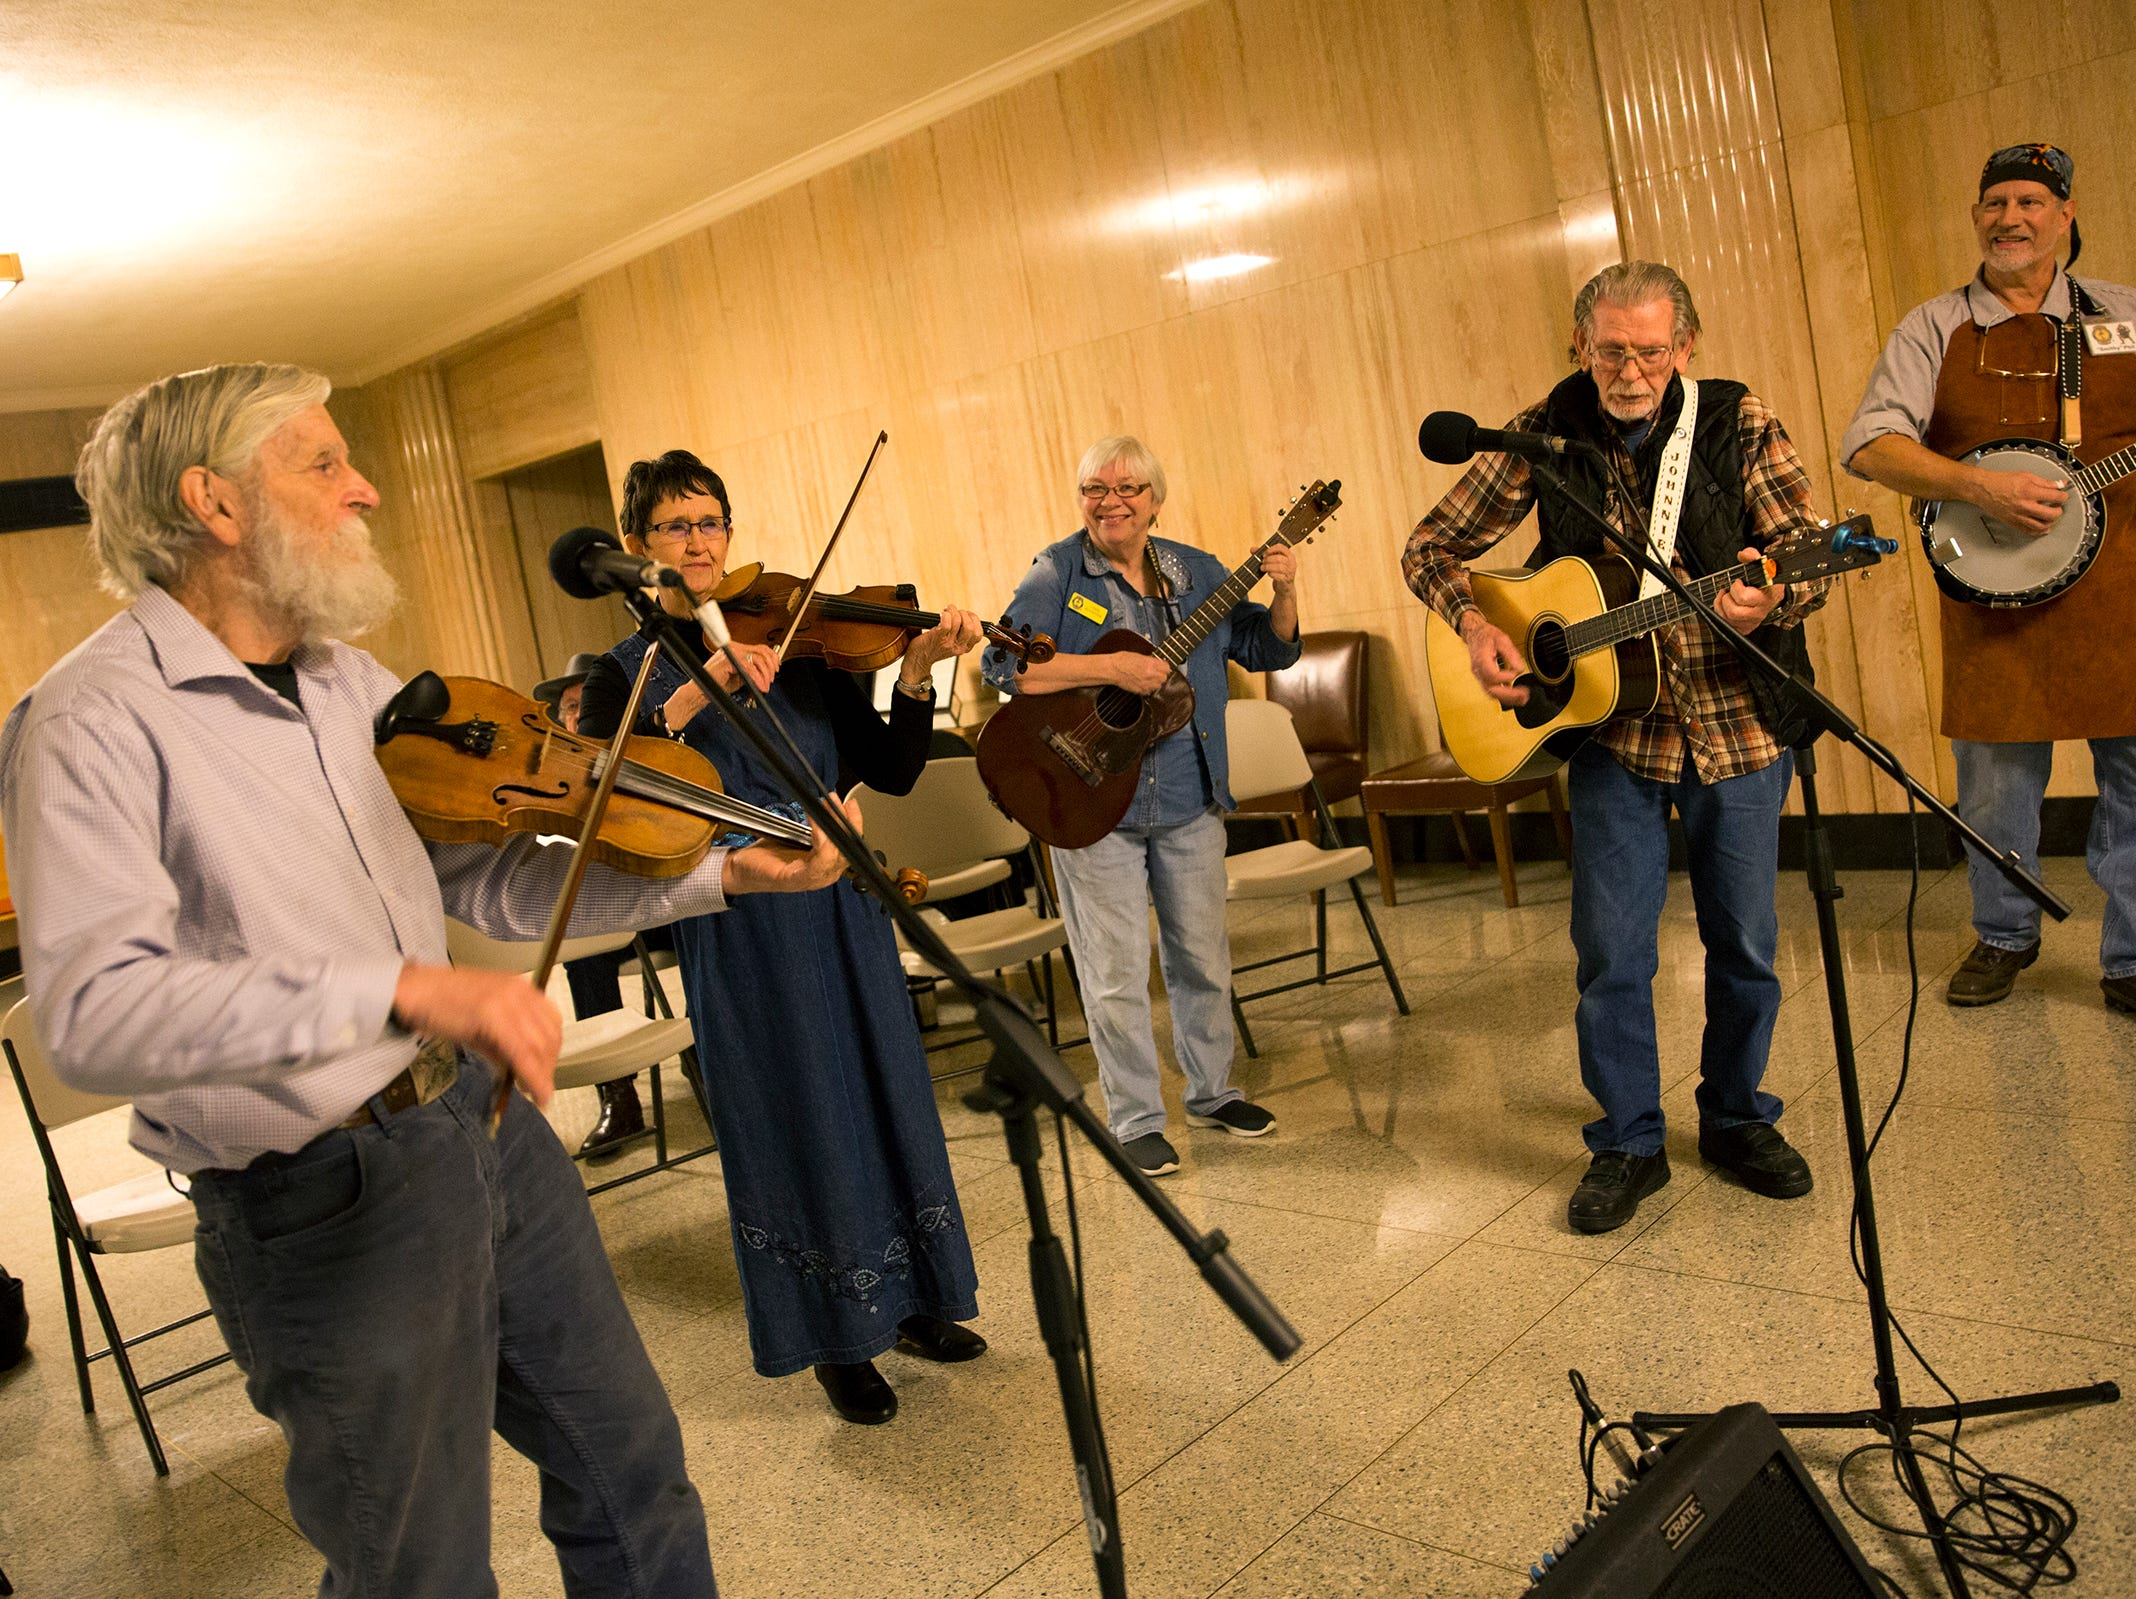 Oregon Old Time Fiddlers play in front of the Senate Chambers during Oregon's 160th Birthday Celebration at the Oregon State Capitol in Salem on Saturday, Feb. 16, 2019.